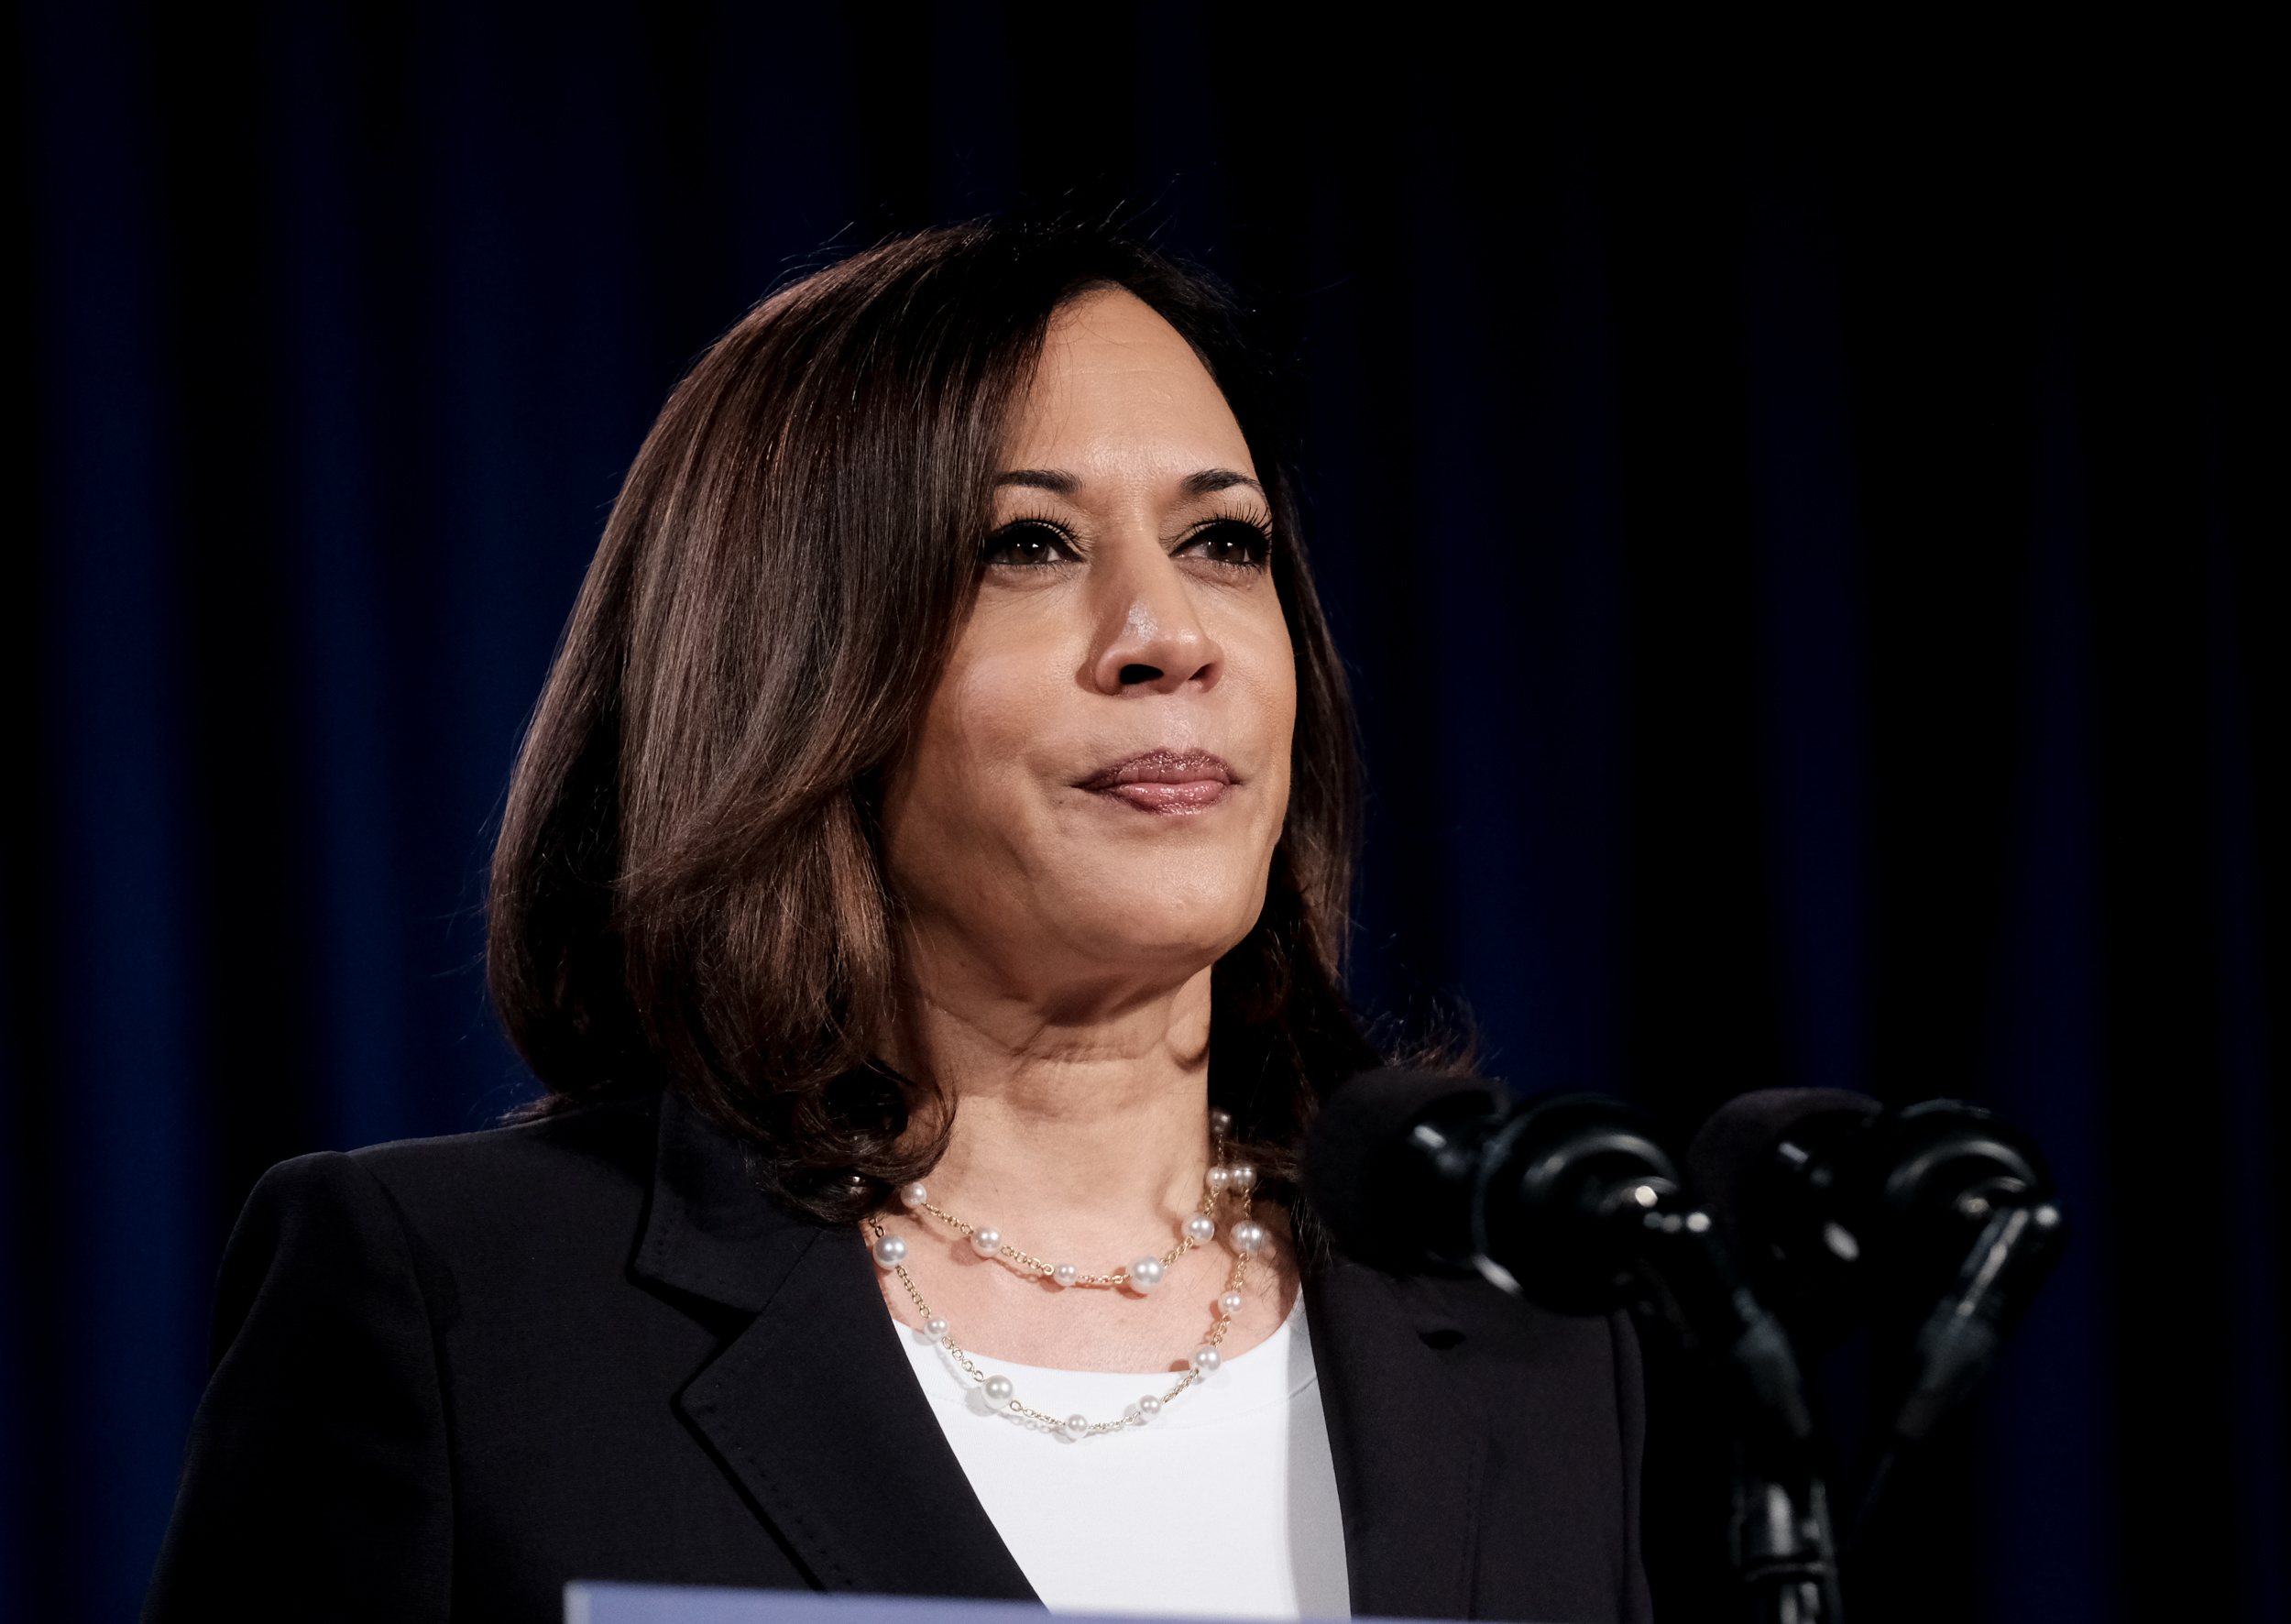 Harris to be sworn in as vice president by Justice Sonia Sotomayor